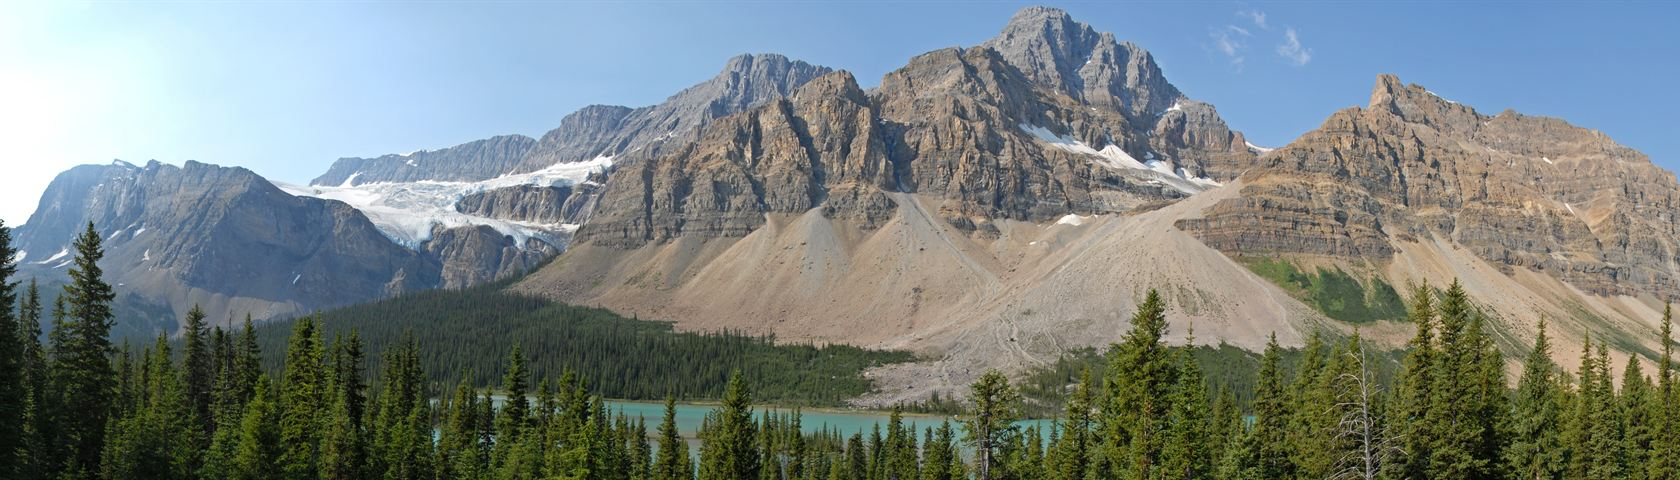 Crowfoot Mountain